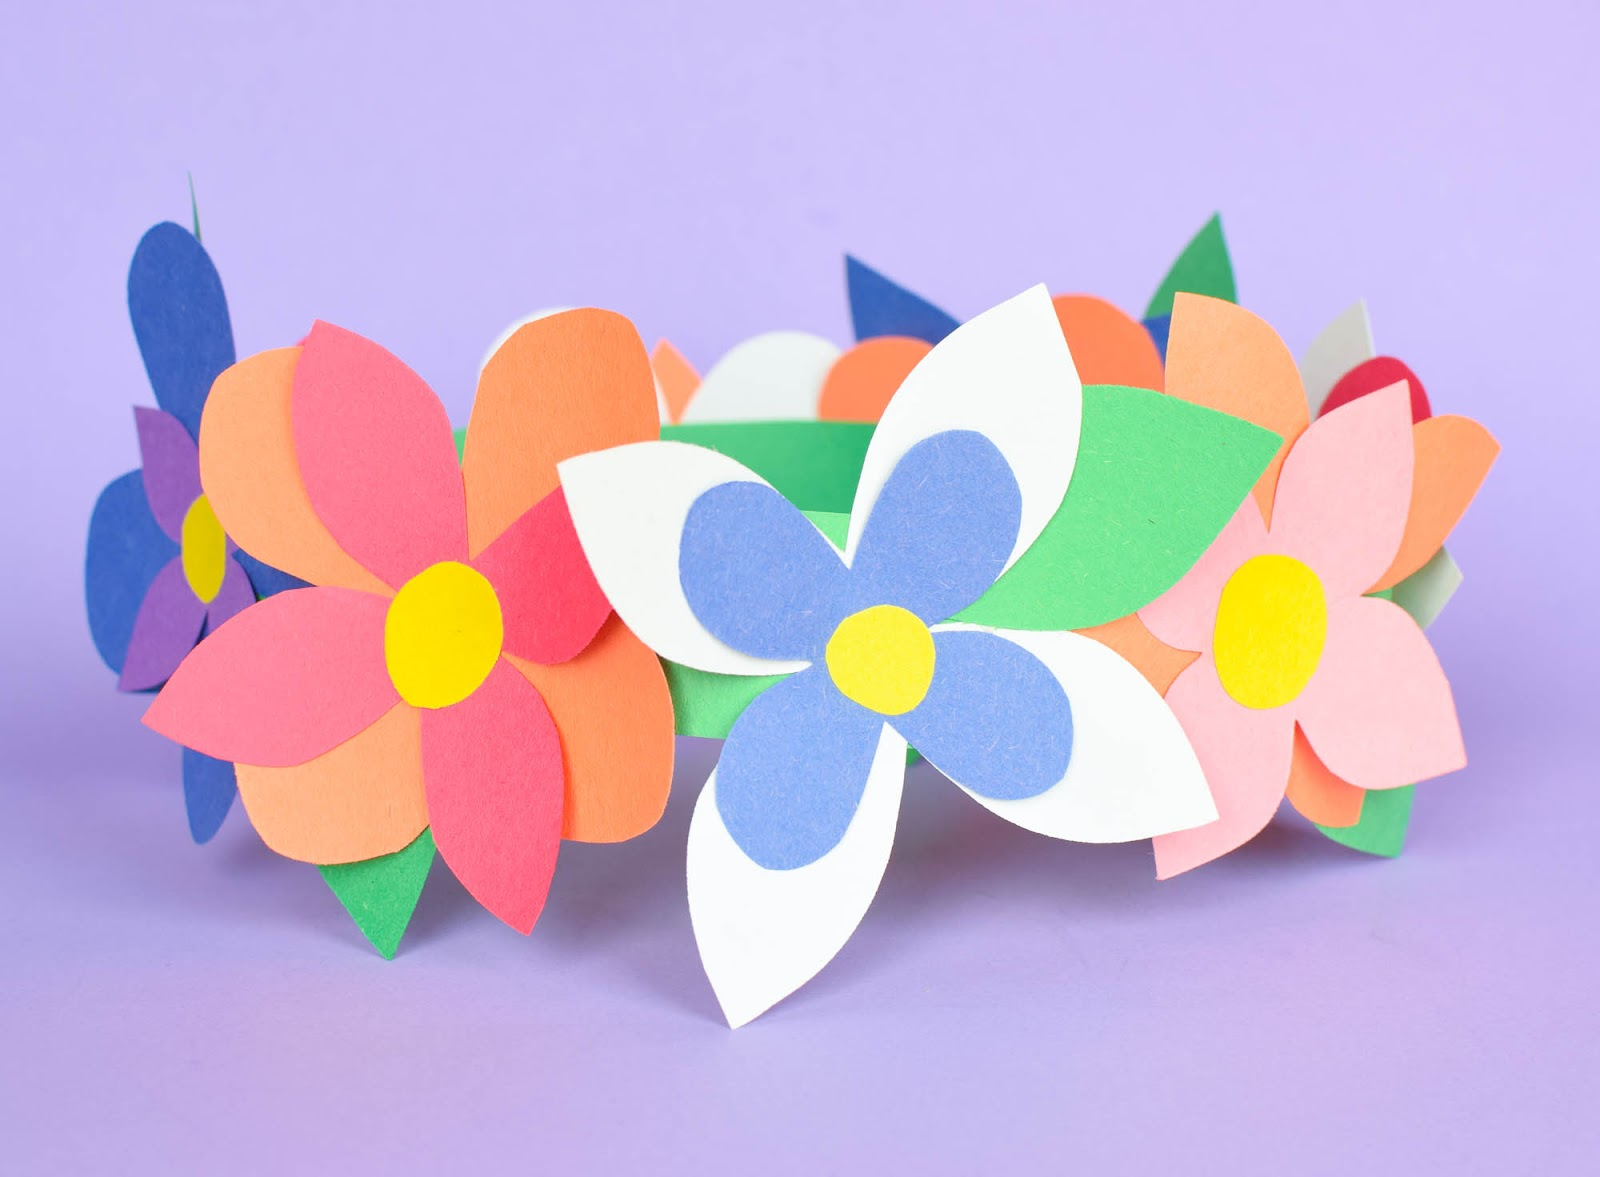 Flower crown spring craft what can we do with paper and glue flower crowns great easy spring craft for preschool kindergarten or elementary kids izmirmasajfo